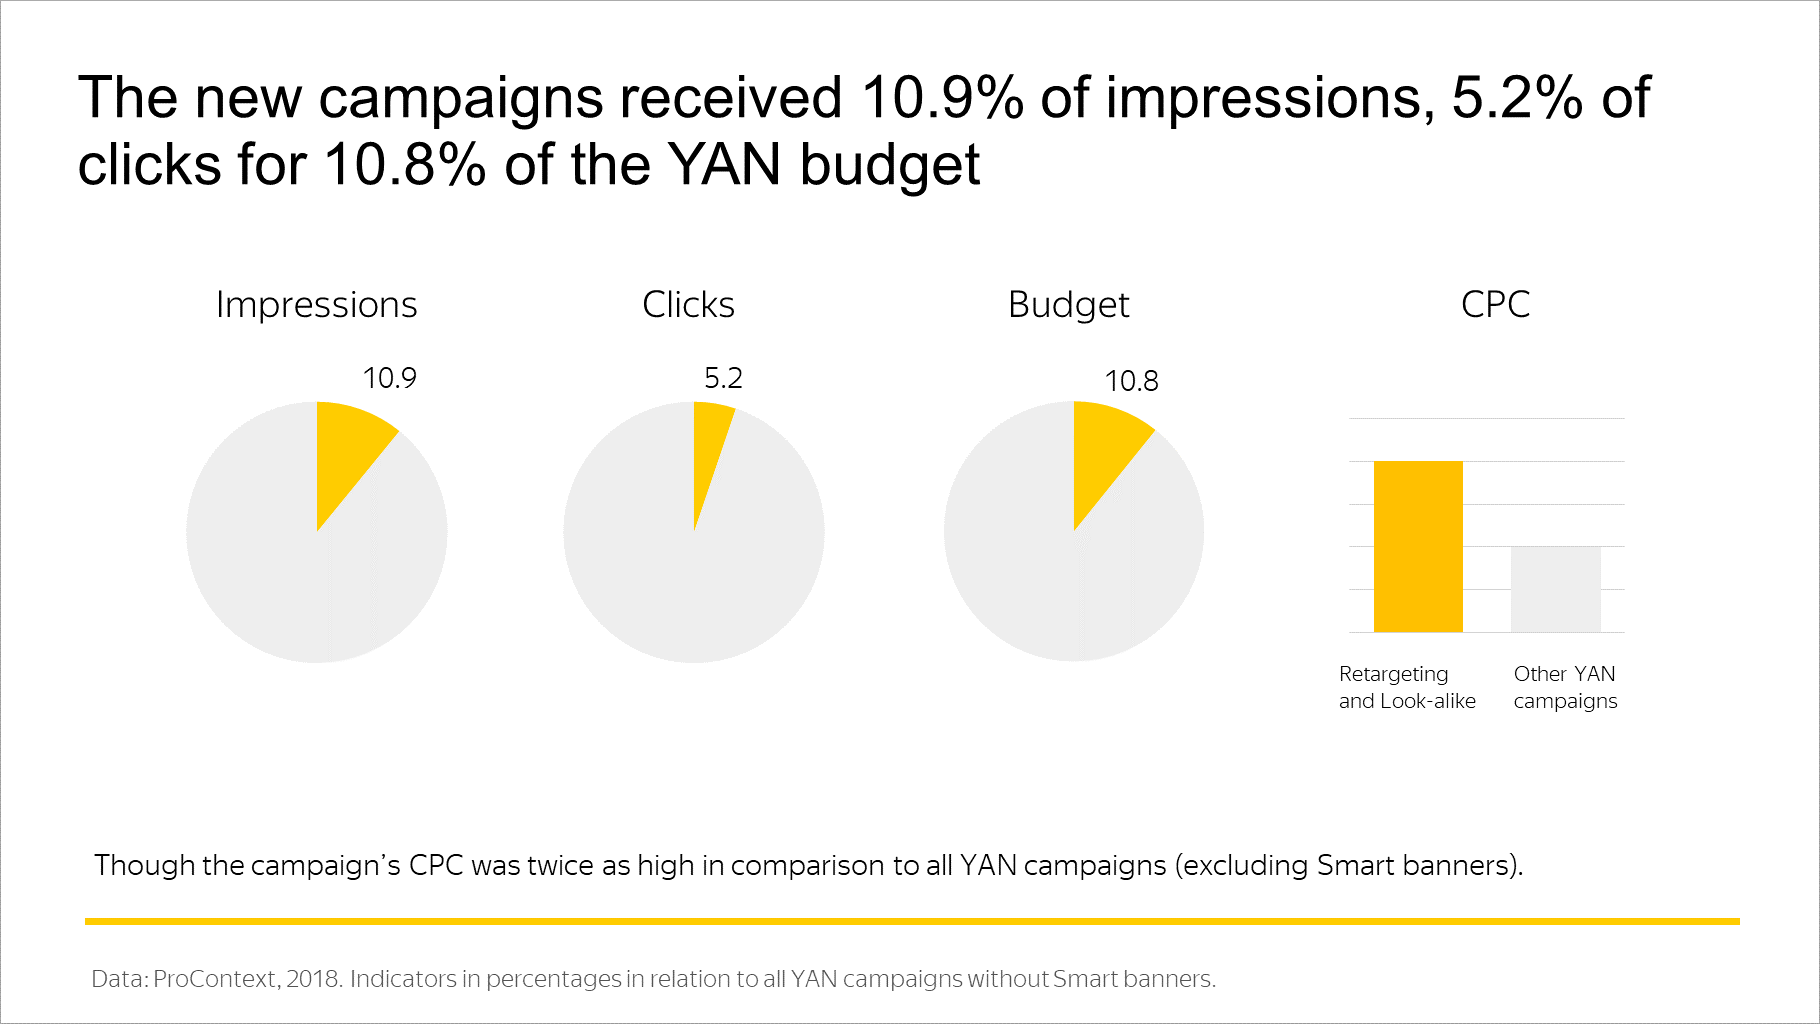 The new campaigns received 10.9% of impressions, 5.2% of clicks for 10.8% of the YAN budget